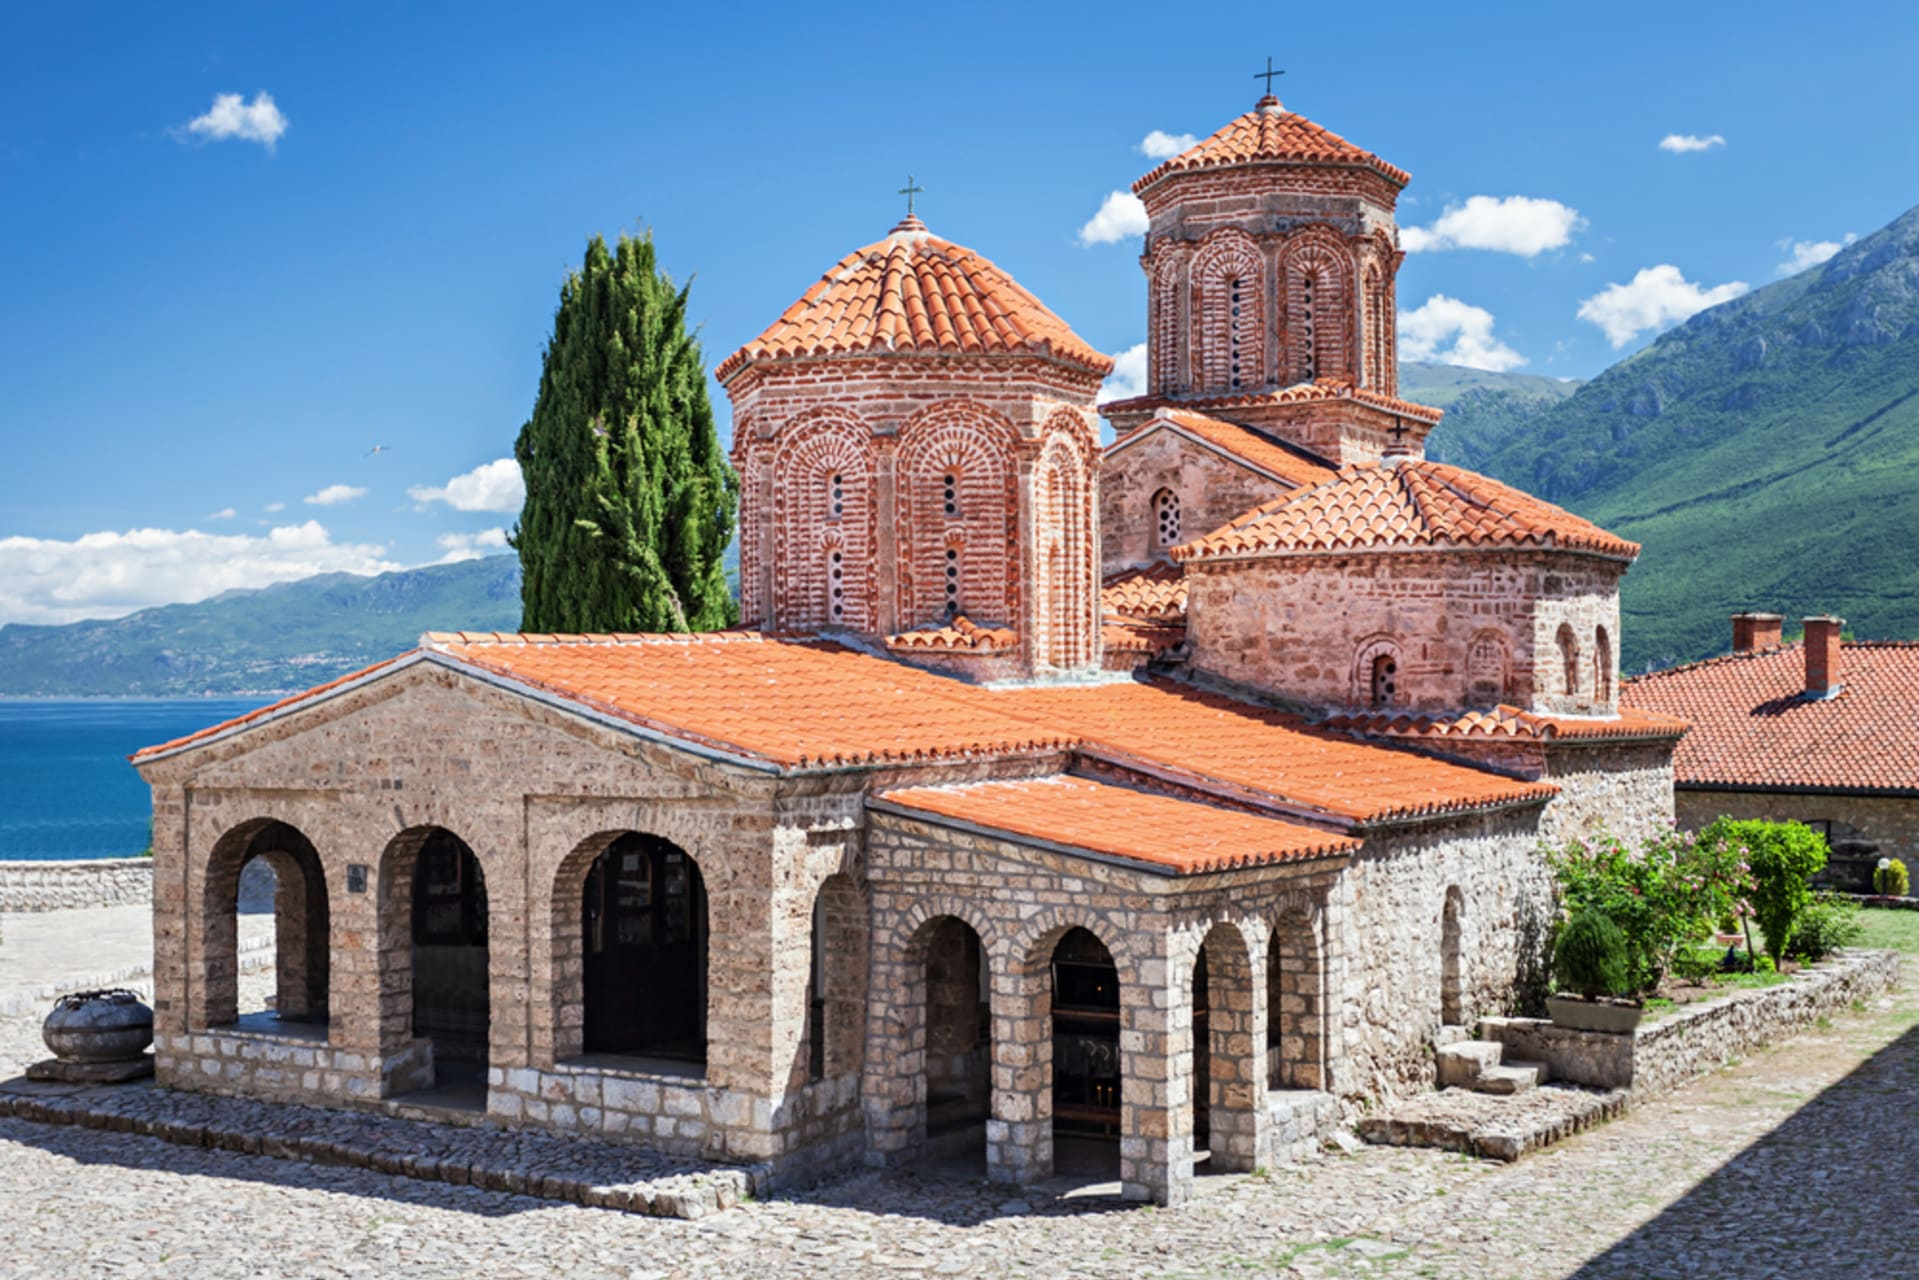 Ohrid - Ohrid Springs - The Source Of The Lake, The Magic And The Myths